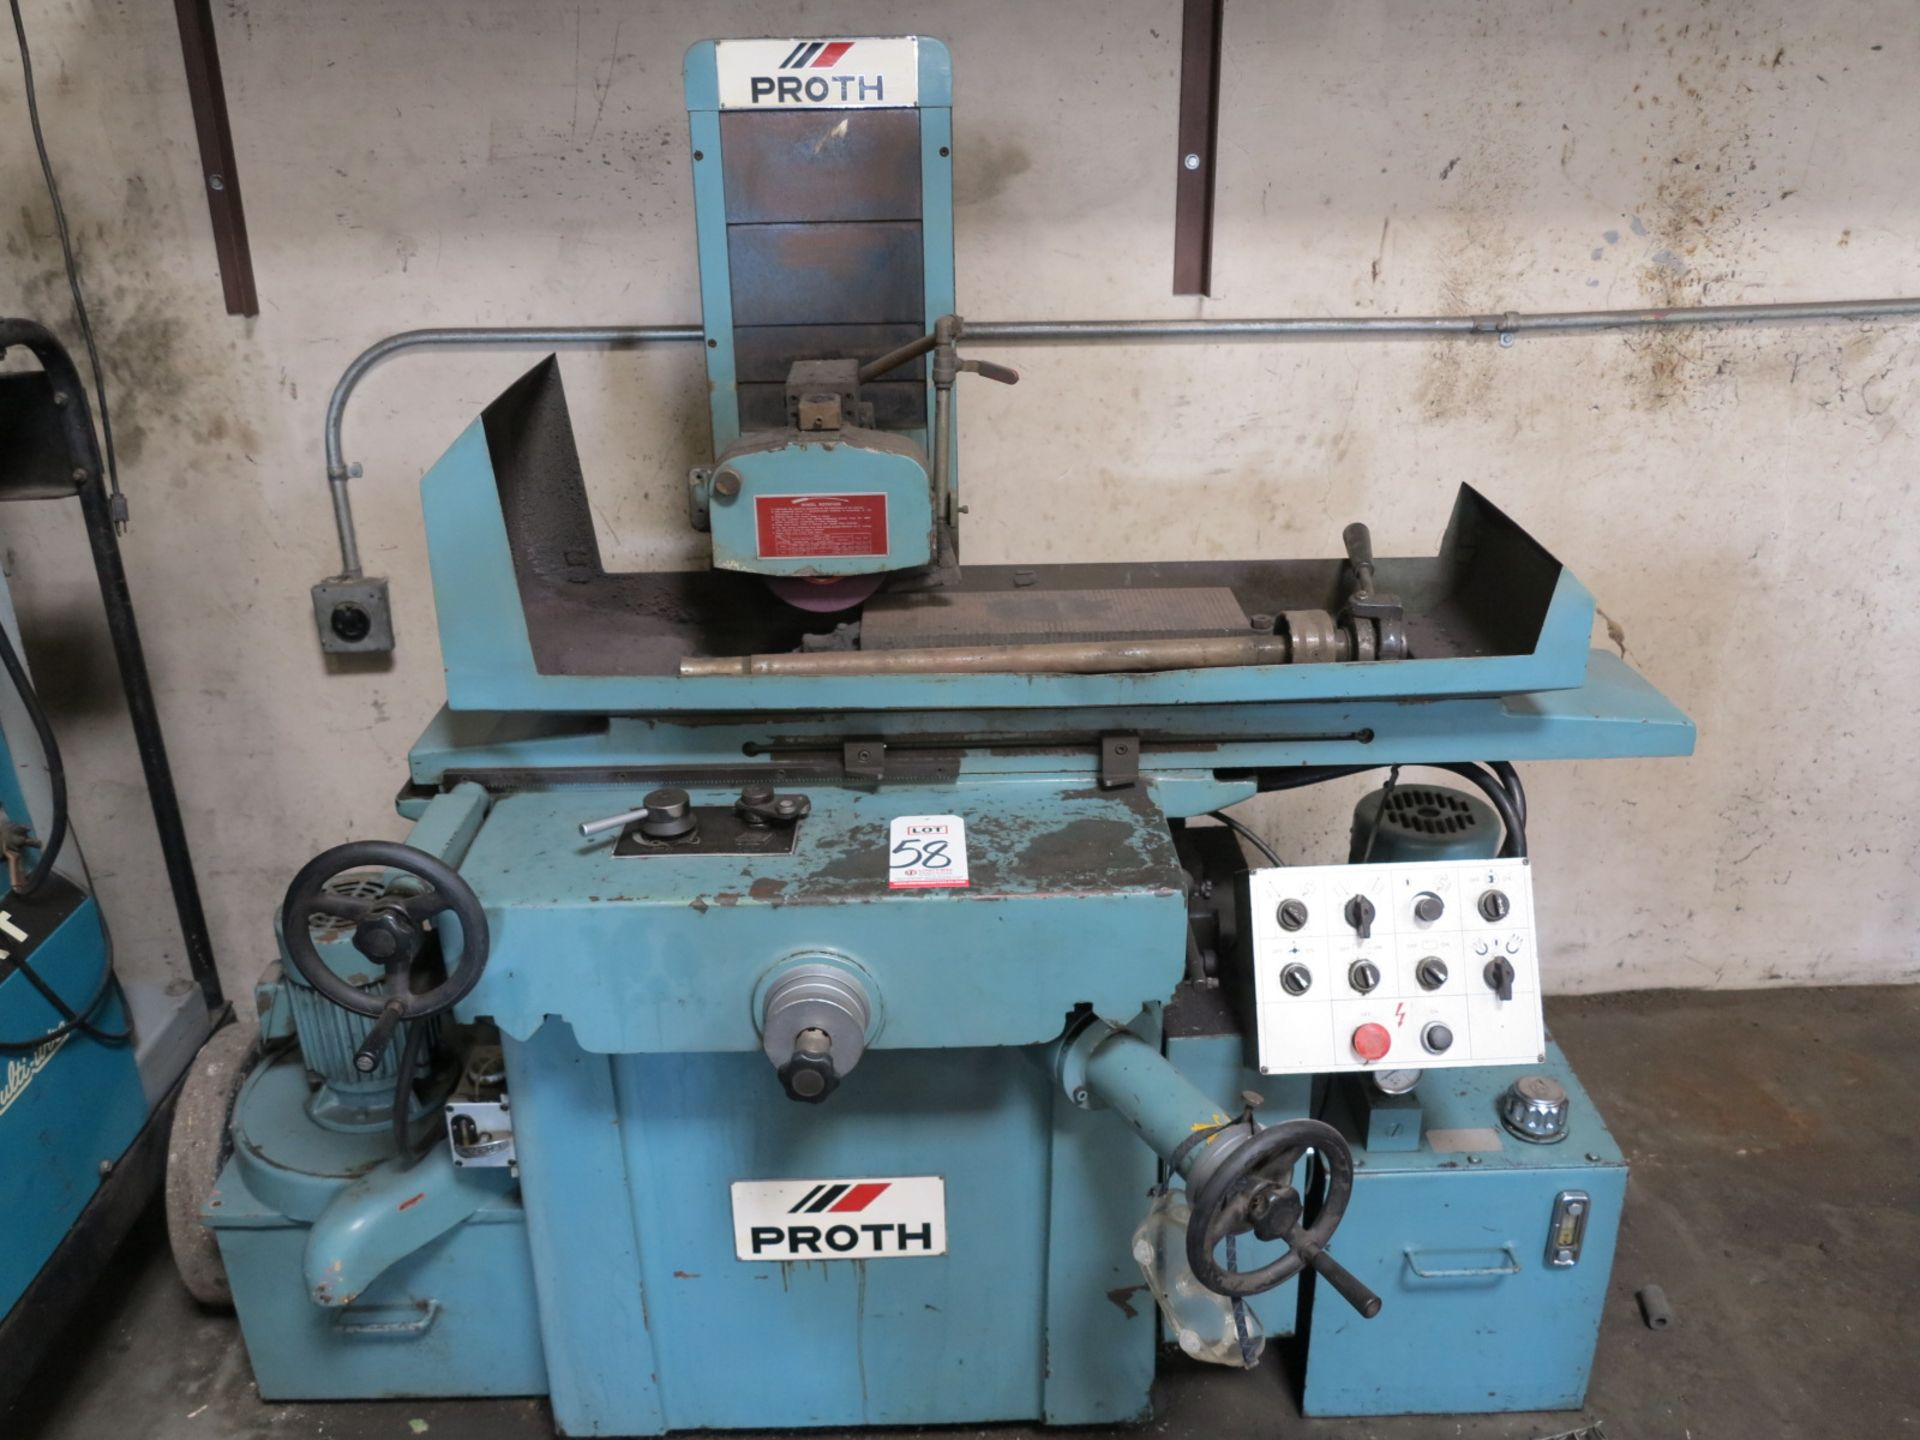 """Lot 58 - 1983 PROTH SURFACE GRINDER, MODEL PSG-2550AH, S/N 30468-2, W/ 6"""" X 18"""" MAGNETIC CHUCK"""